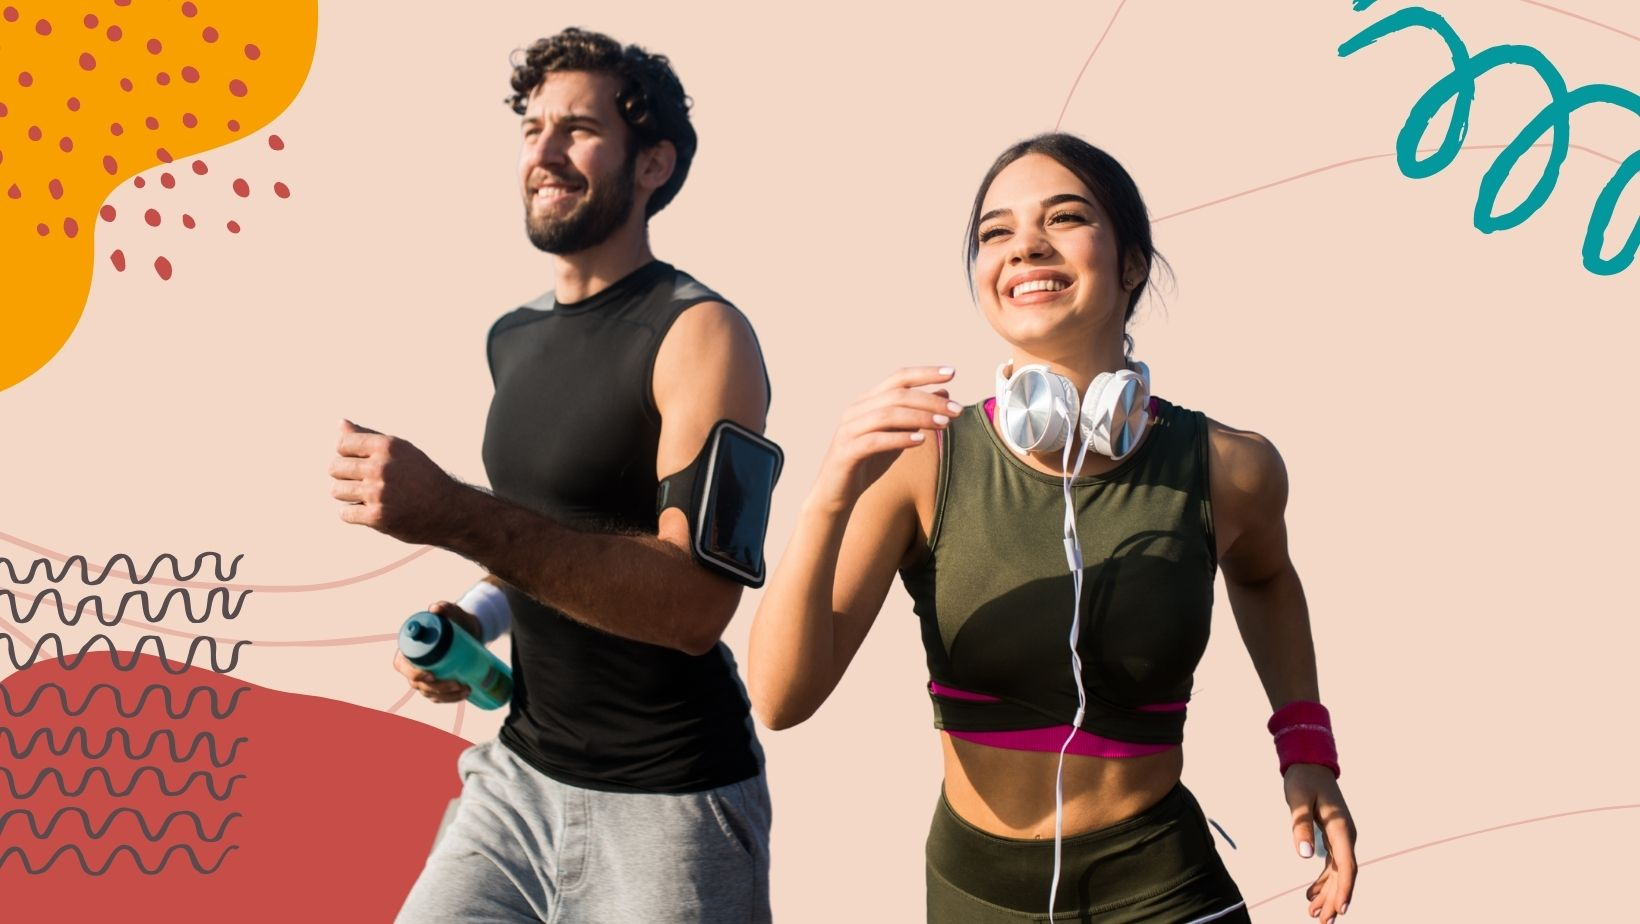 Man and woman smiling while running